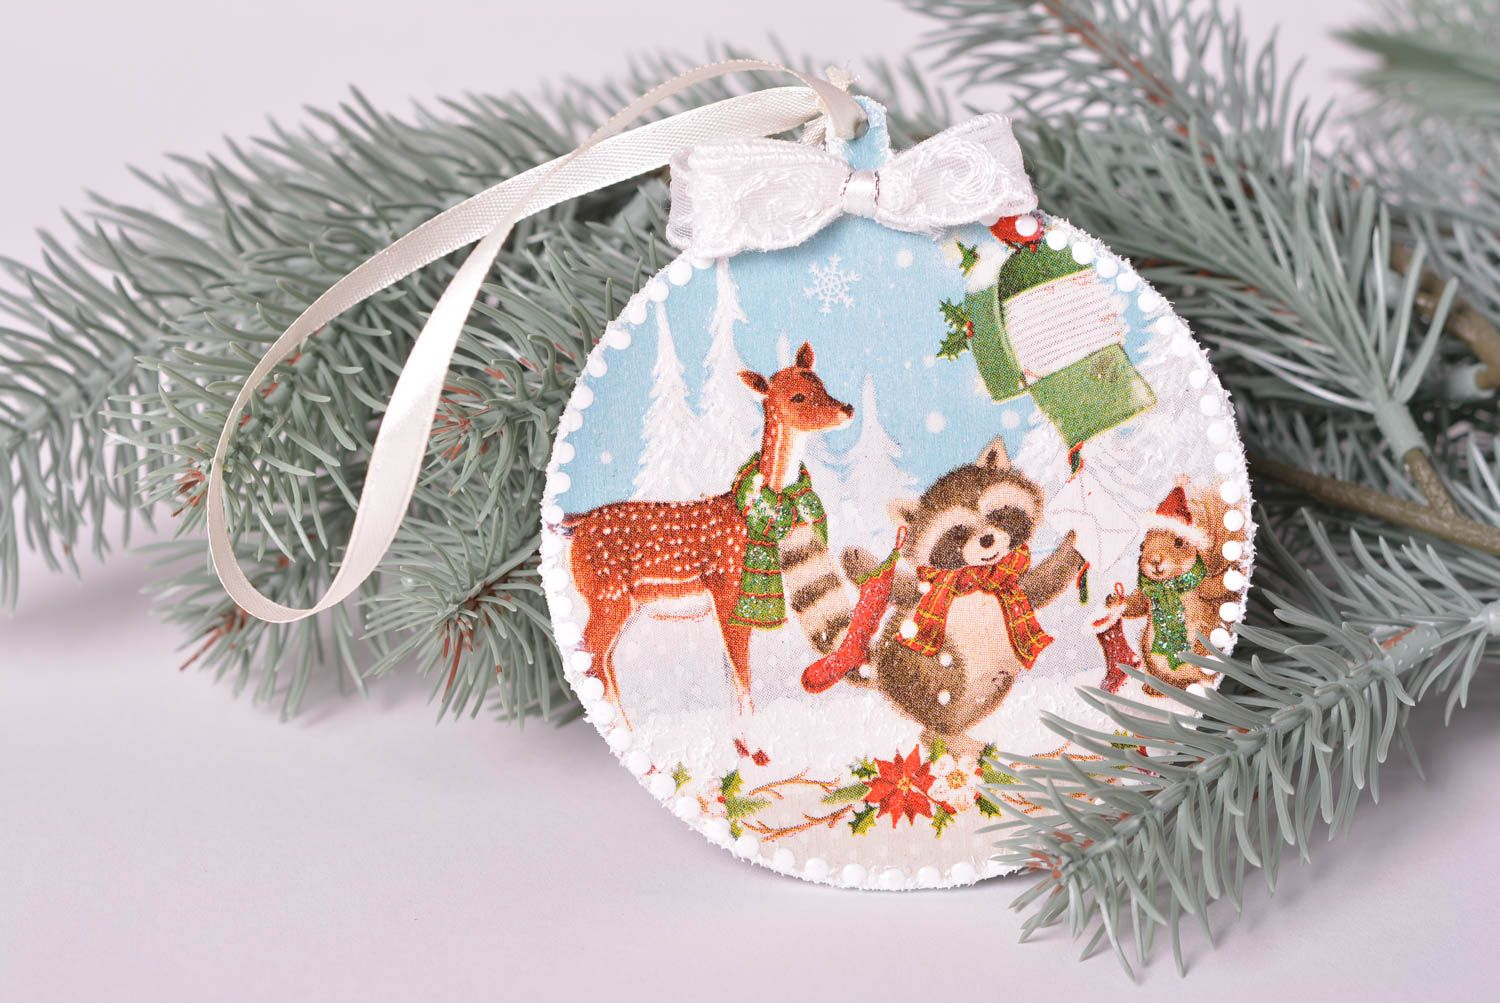 Wooden toy handmade tree toy decoupage Christmas decor tree decoration